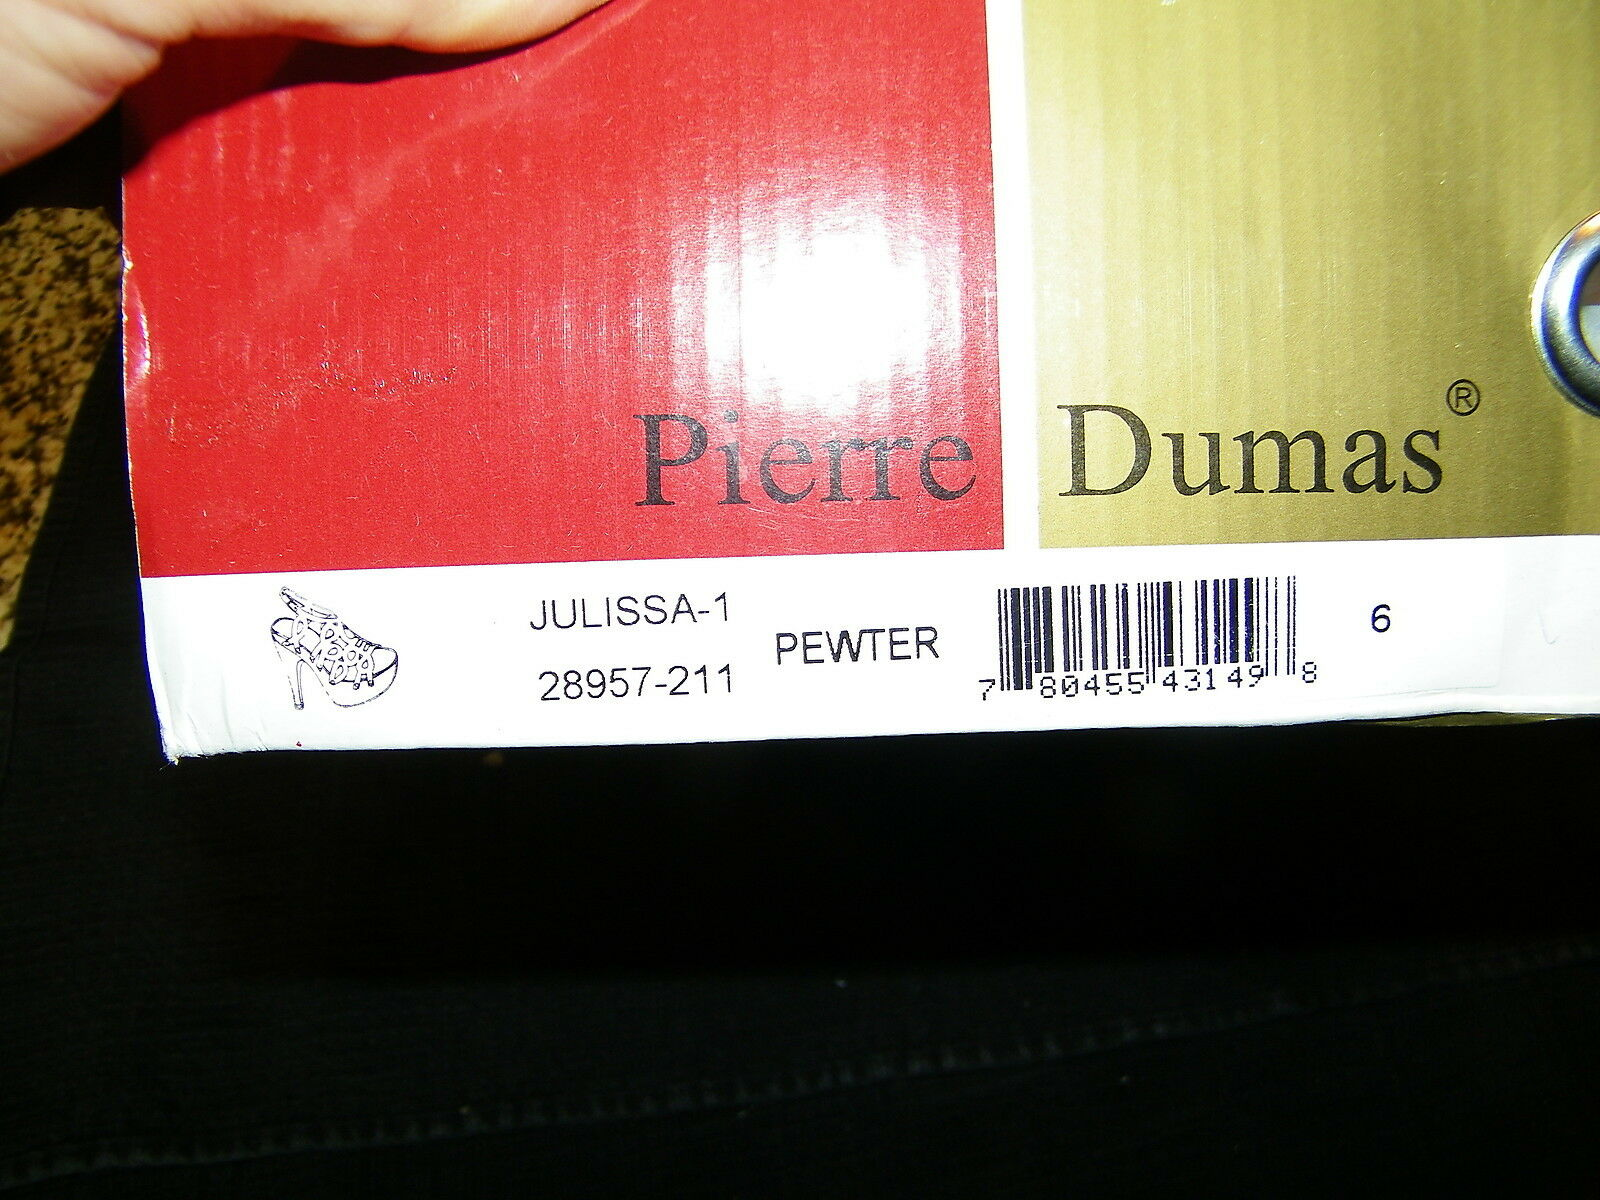 Pierre Dumas Julissa Pewter High 6m Heels Shoes NIB Size 6m High bbed12